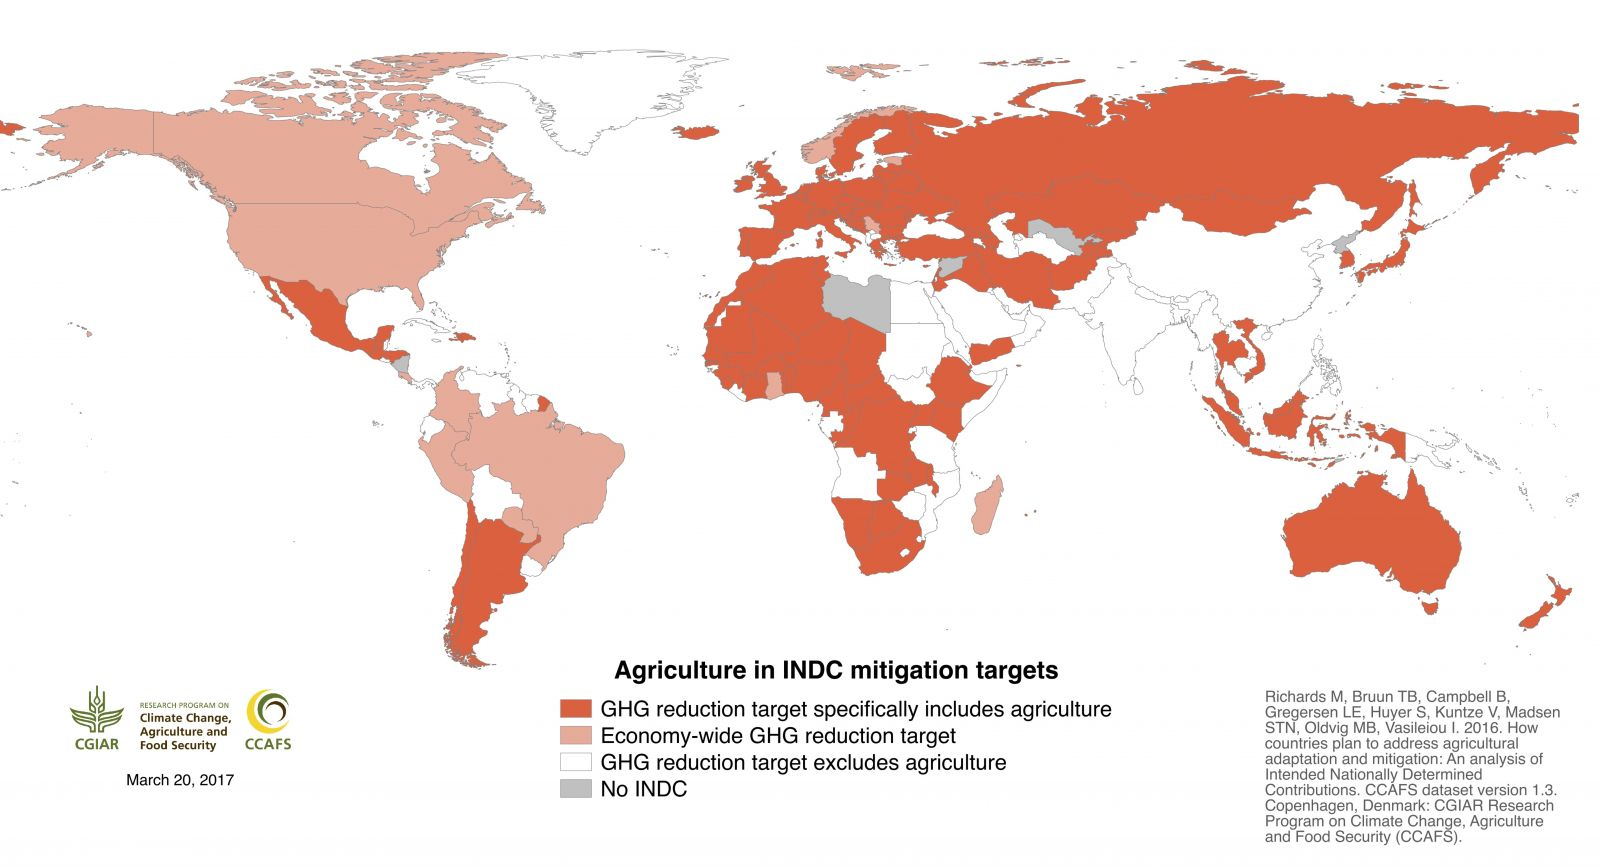 Agriculture in INDC mitigation targets (click to enlarge)